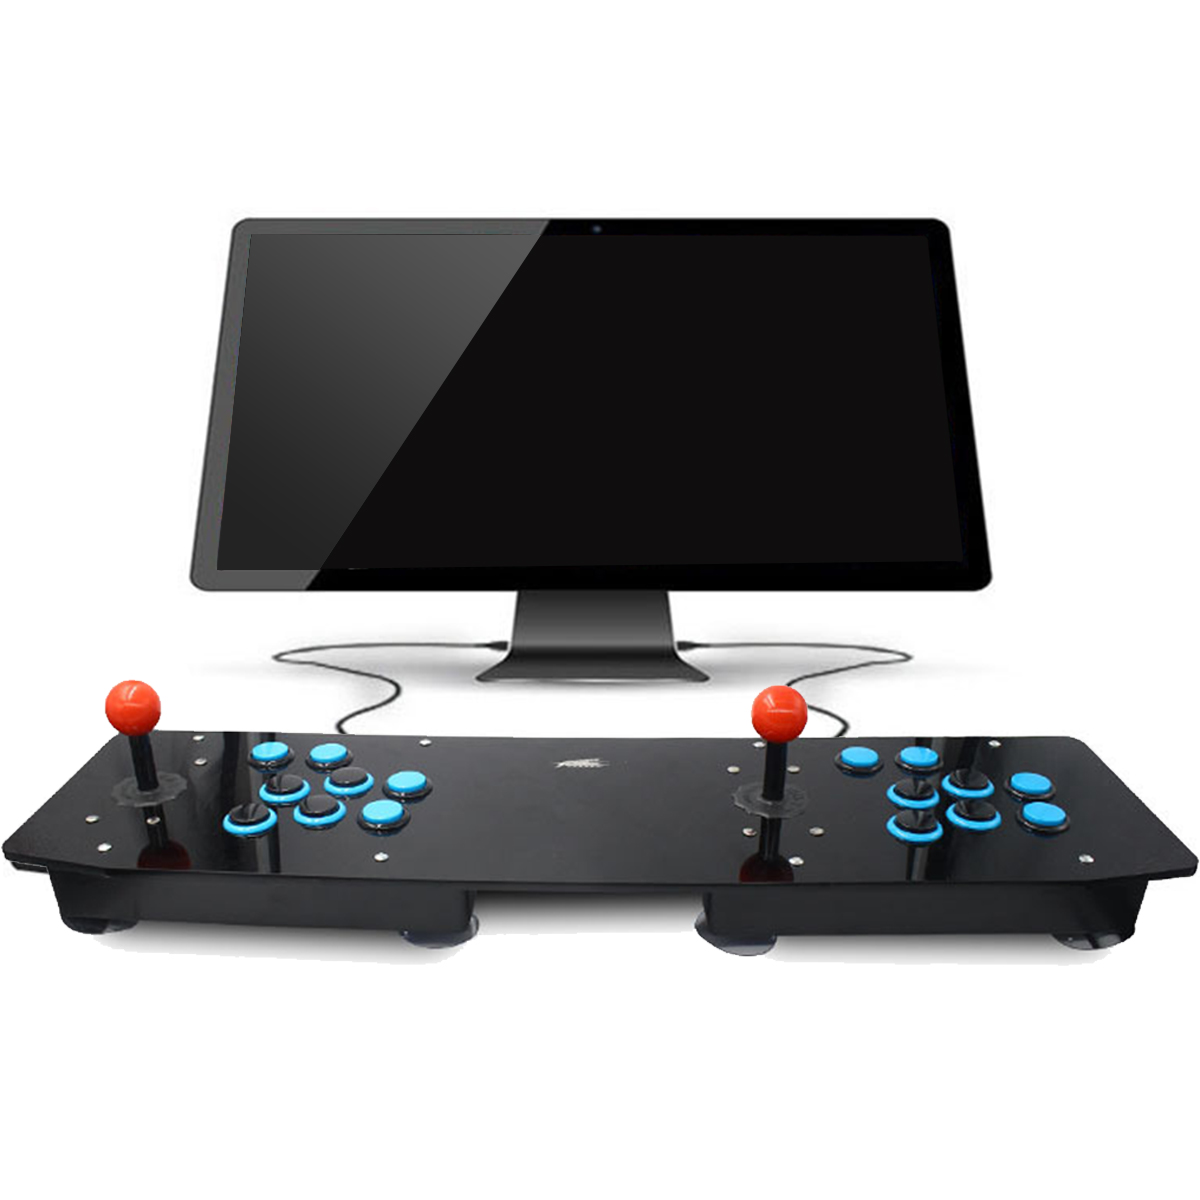 Double Acrylic Arcade Joystick Video Arcade Game Joystick Arcade Controller Console Game Machine For PC For Windows USB New arcade joystick gamepad kit 800 games in 1 video tv jamma 2 joystick vga hidmi metal double stick arcade console with 2players